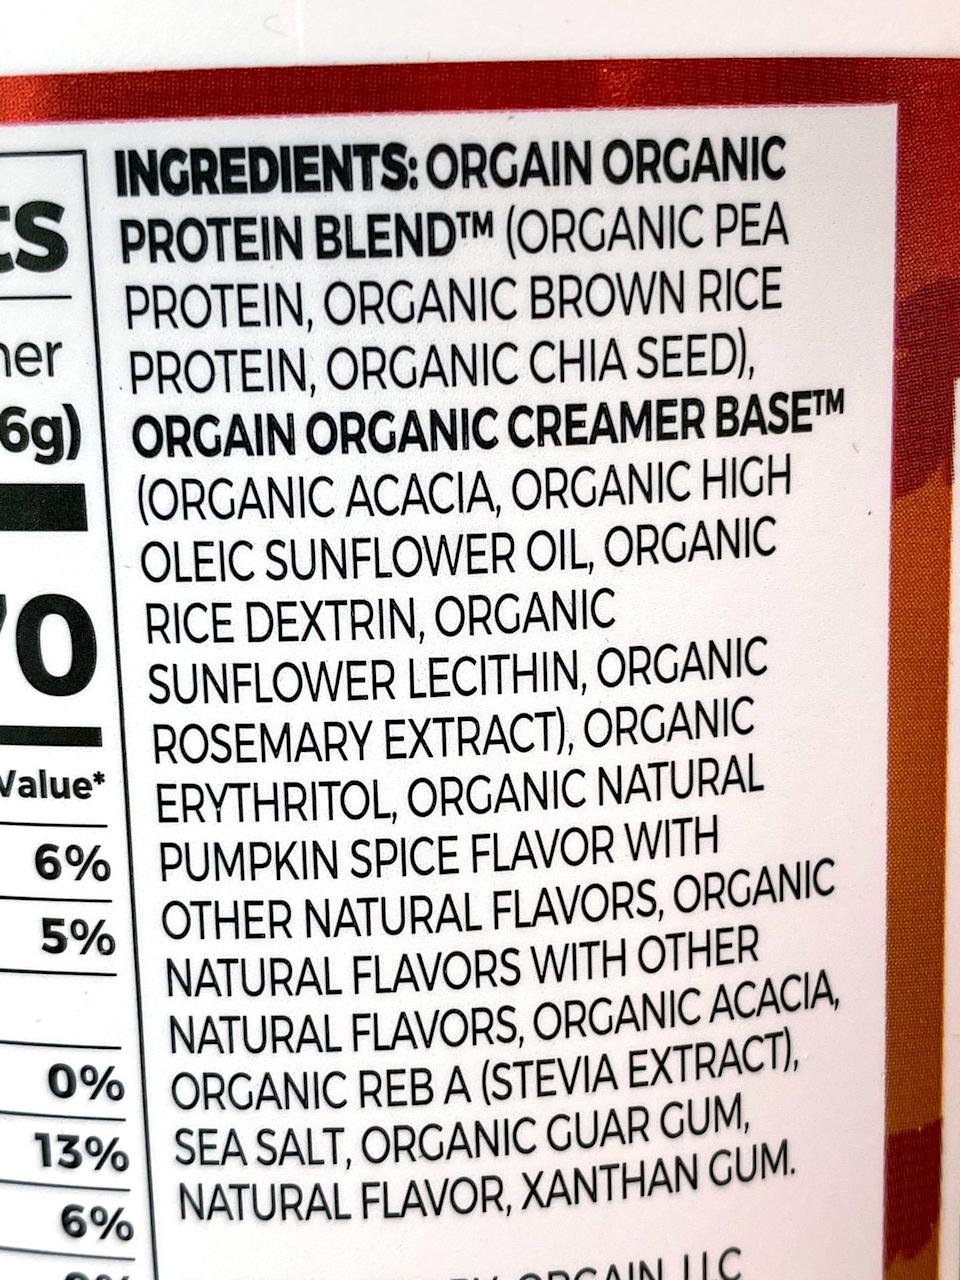 <p>Here are the ingredients: Orgain Organic Protein Blend™ (Organic Pea Protein, Organic Brown Rice Protein, Organic Chia Seed), Orgain Organic Creamer Base™ (Organic Acacia Gum, Organic High Oleic Sunflower Oil, Organic Inulin, Organic Rice Dextrins, Organic Rice Bran Extract, Organic Rosemary Extract), Organic Erythritol, Organic Natural Flavors, Natural Flavor, Sea Salt, Organic Acacia Gum, Organic Guar Gum, Organic Stevia, Xanthan Gum</p> <p>I have a pretty sensitive stomach, especially to sugar, but this is easy for me to digest, as it's sweetened with stevia.</p>